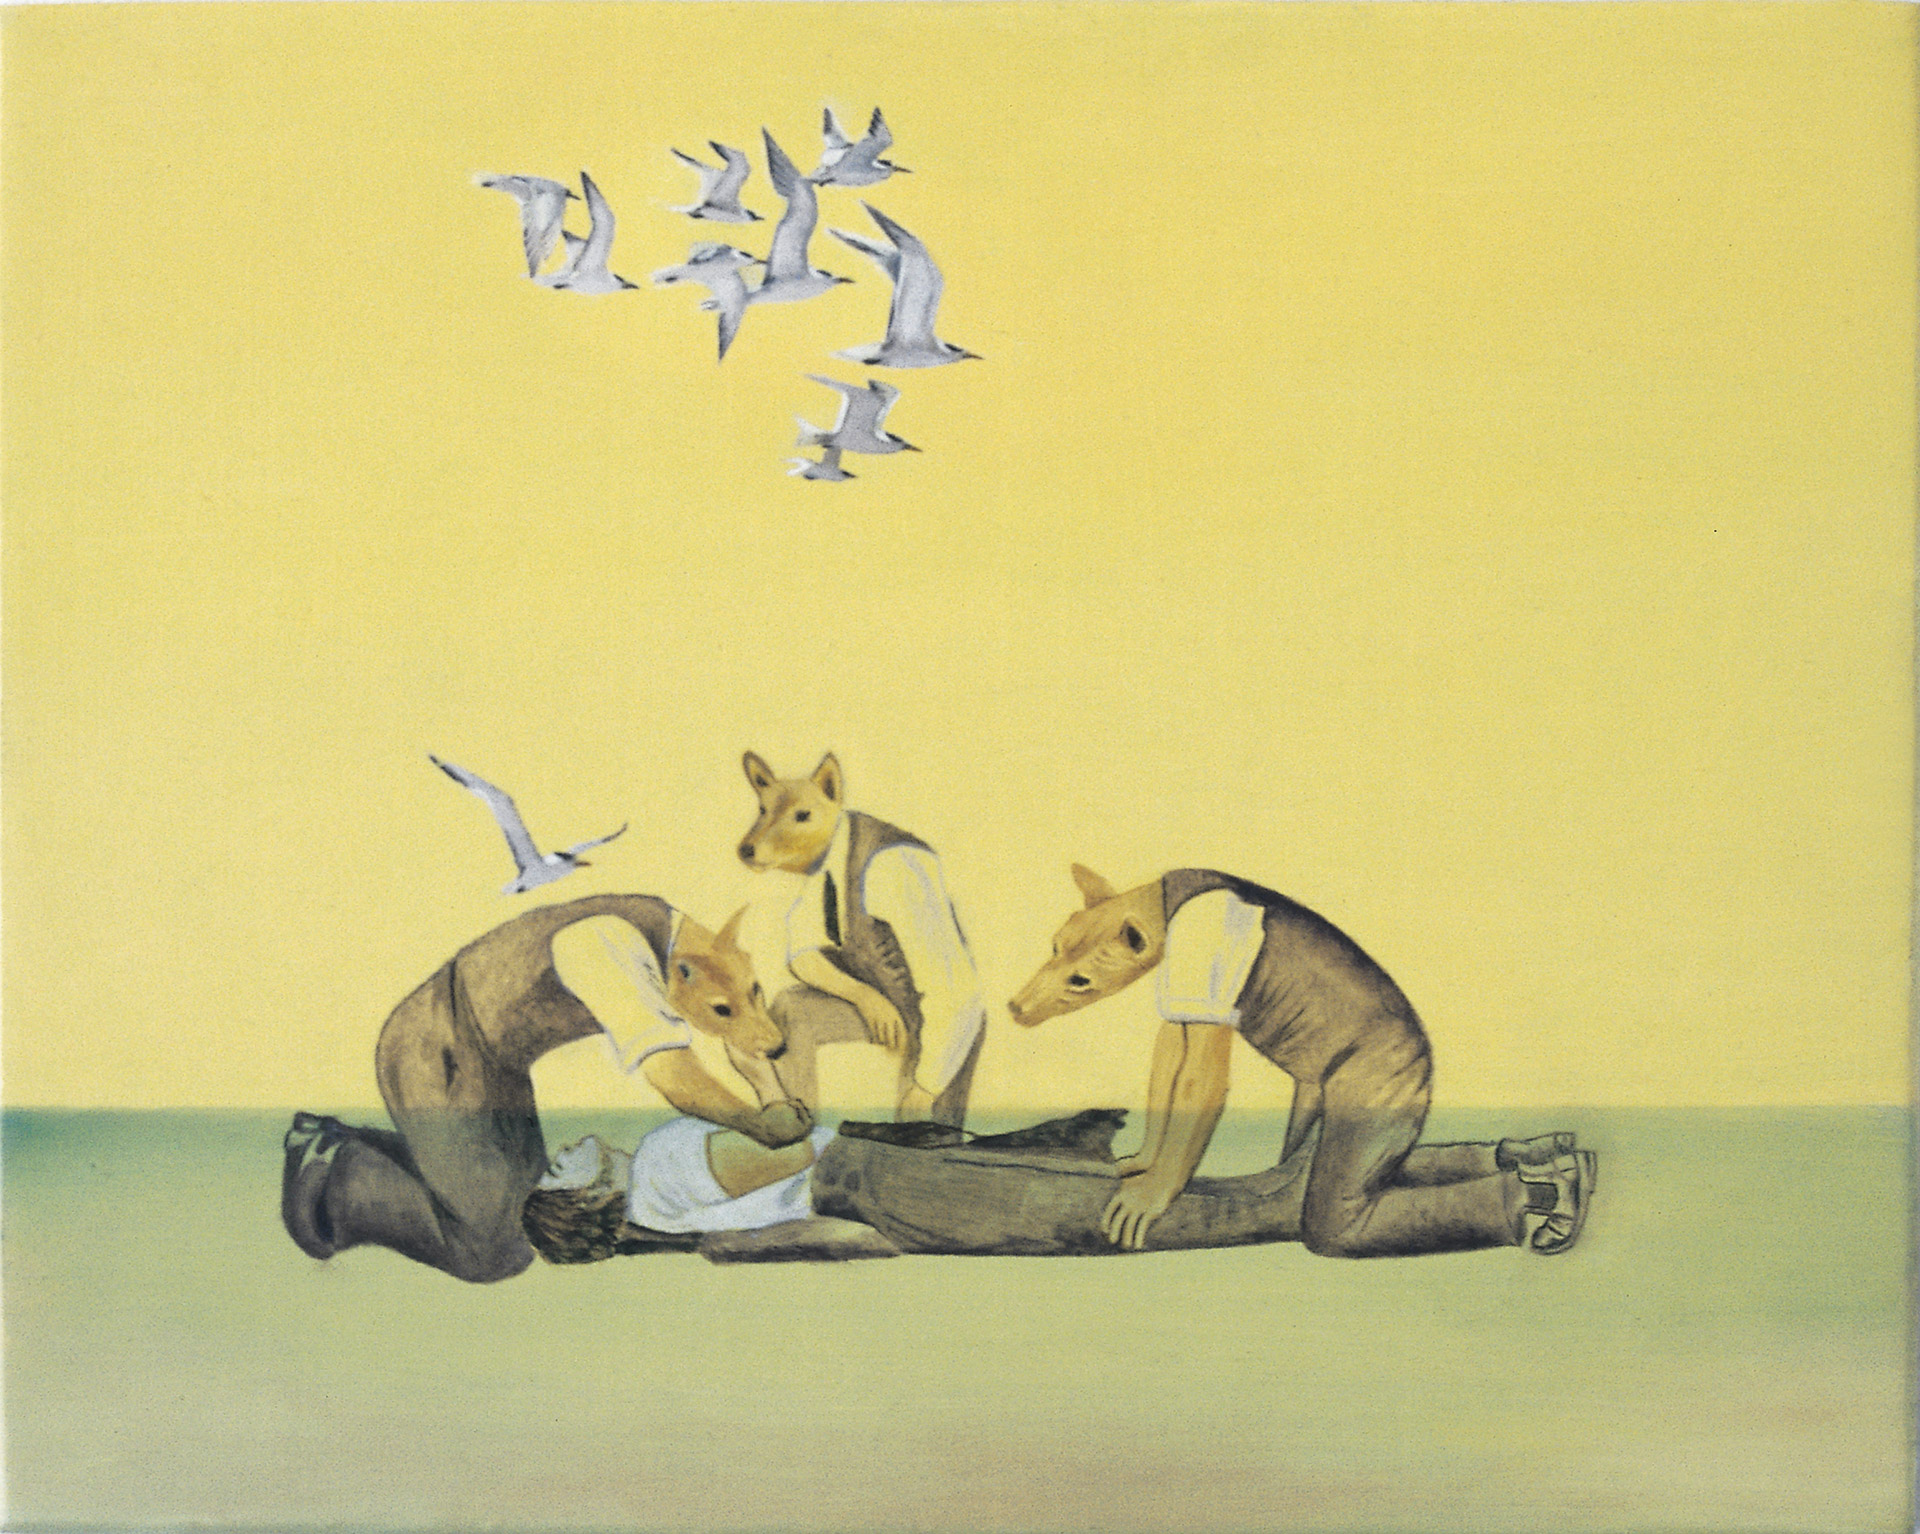 Artificial respiration is a painting by Australian artist Madeleine Kelly of dingo headed people shown MCA in primavera 2005 Milani Gallery